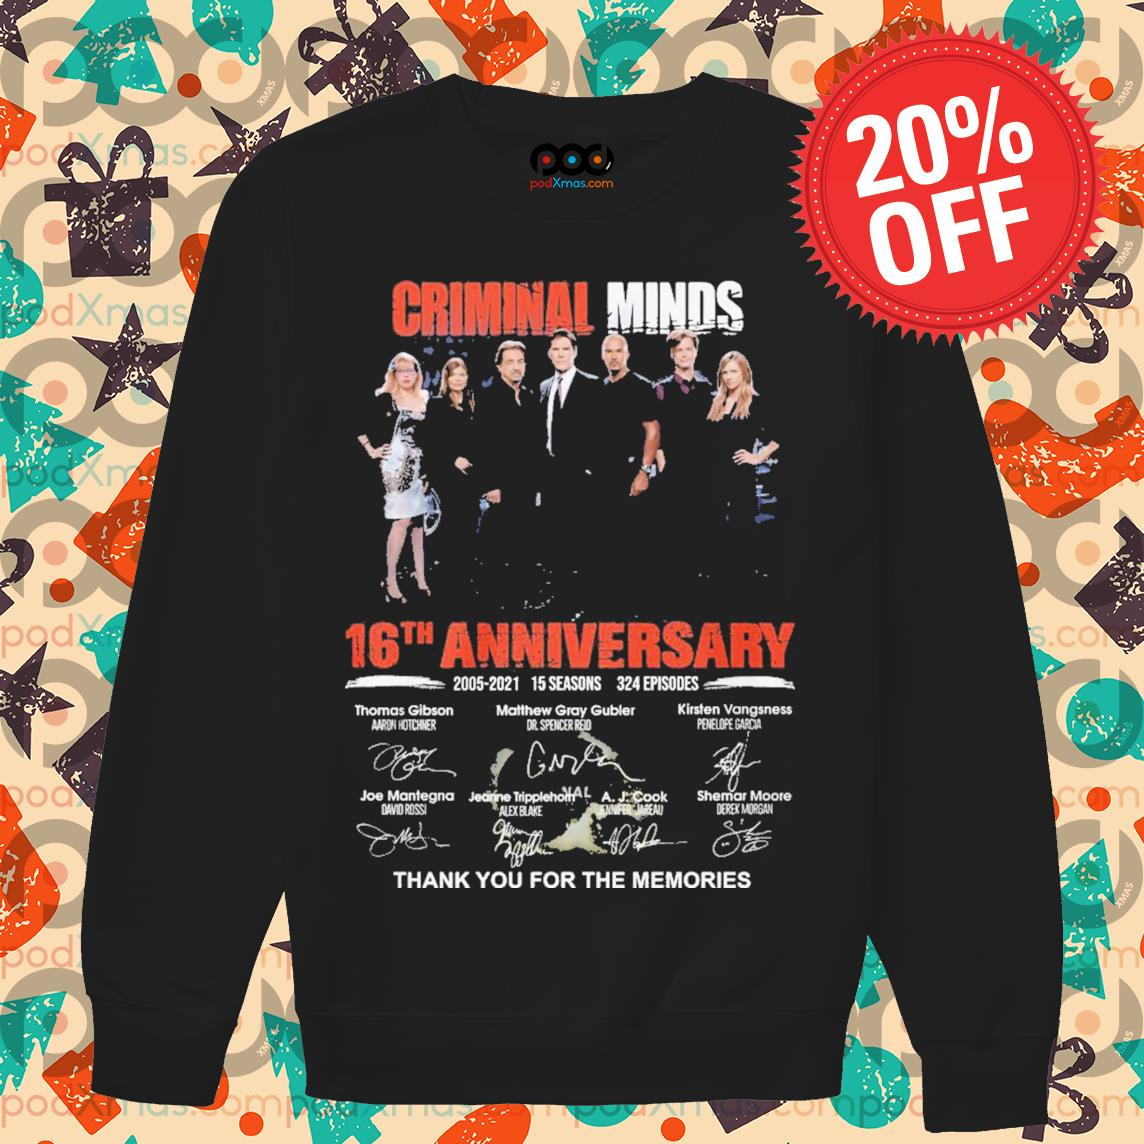 Criminal minds 16th Anniversary signature thank you for the memories s Sweater PODxmas den